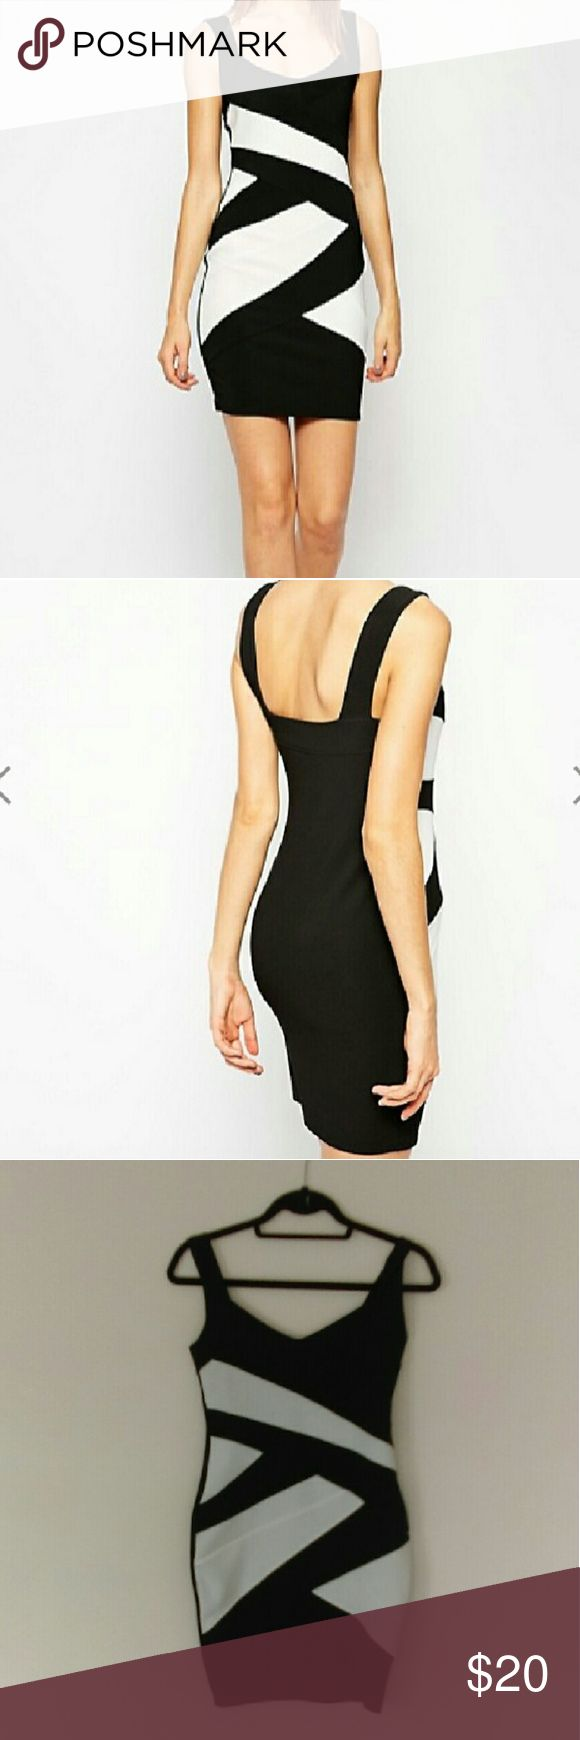 ASOS Black & White Color Block Bandage Dress Super sexy dress fits like a glove!  97% polyester 3% elastane I only wore this dress once and loved it but I've gained some weight so it's time to let it go. Lol ASOS Dresses